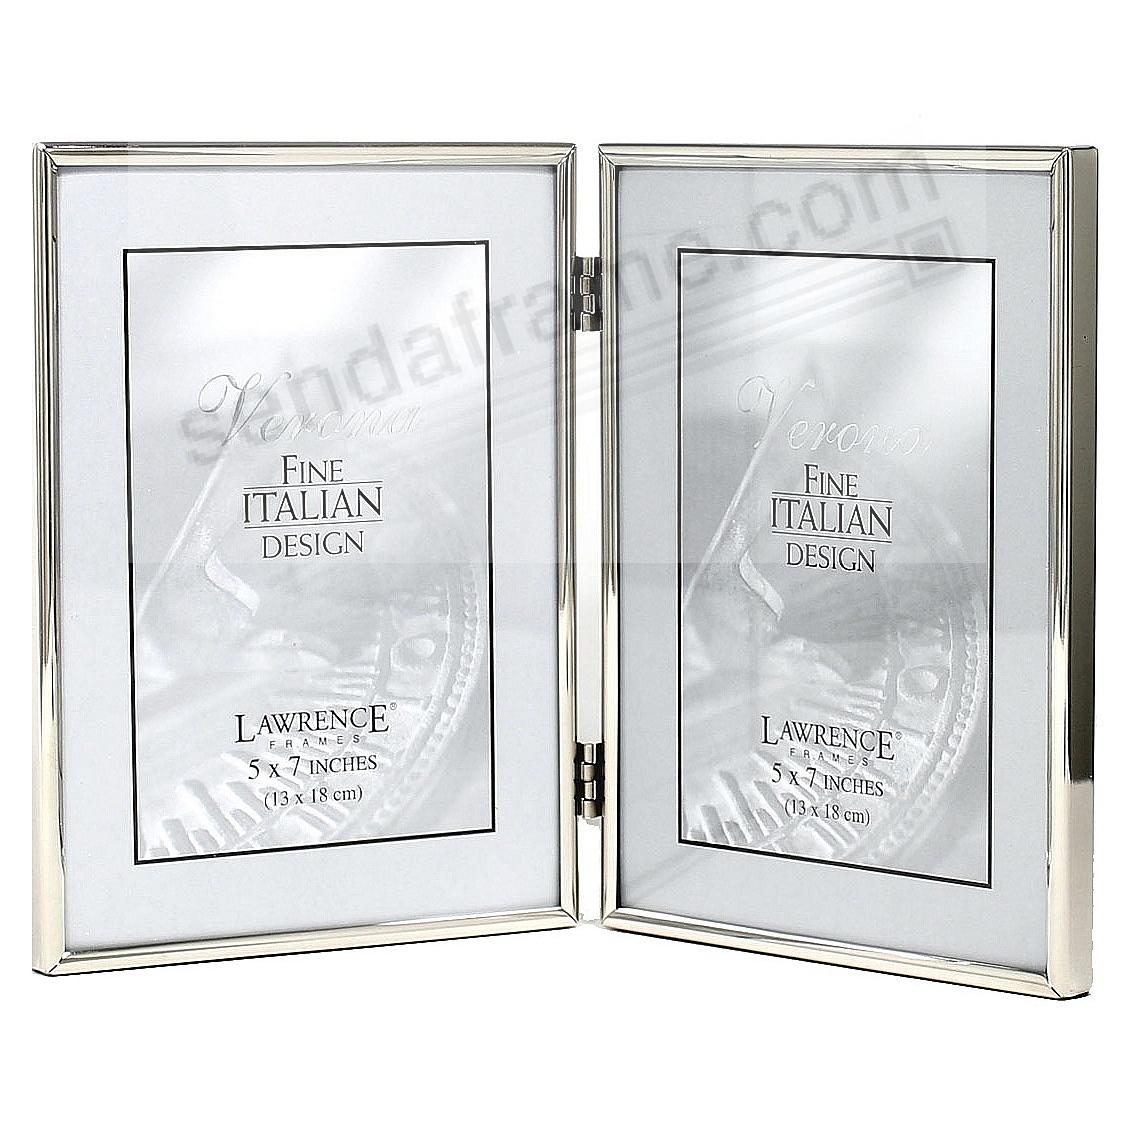 Polished SIMPLY SILVER double hinged 5x7 frame by Lawrence ...